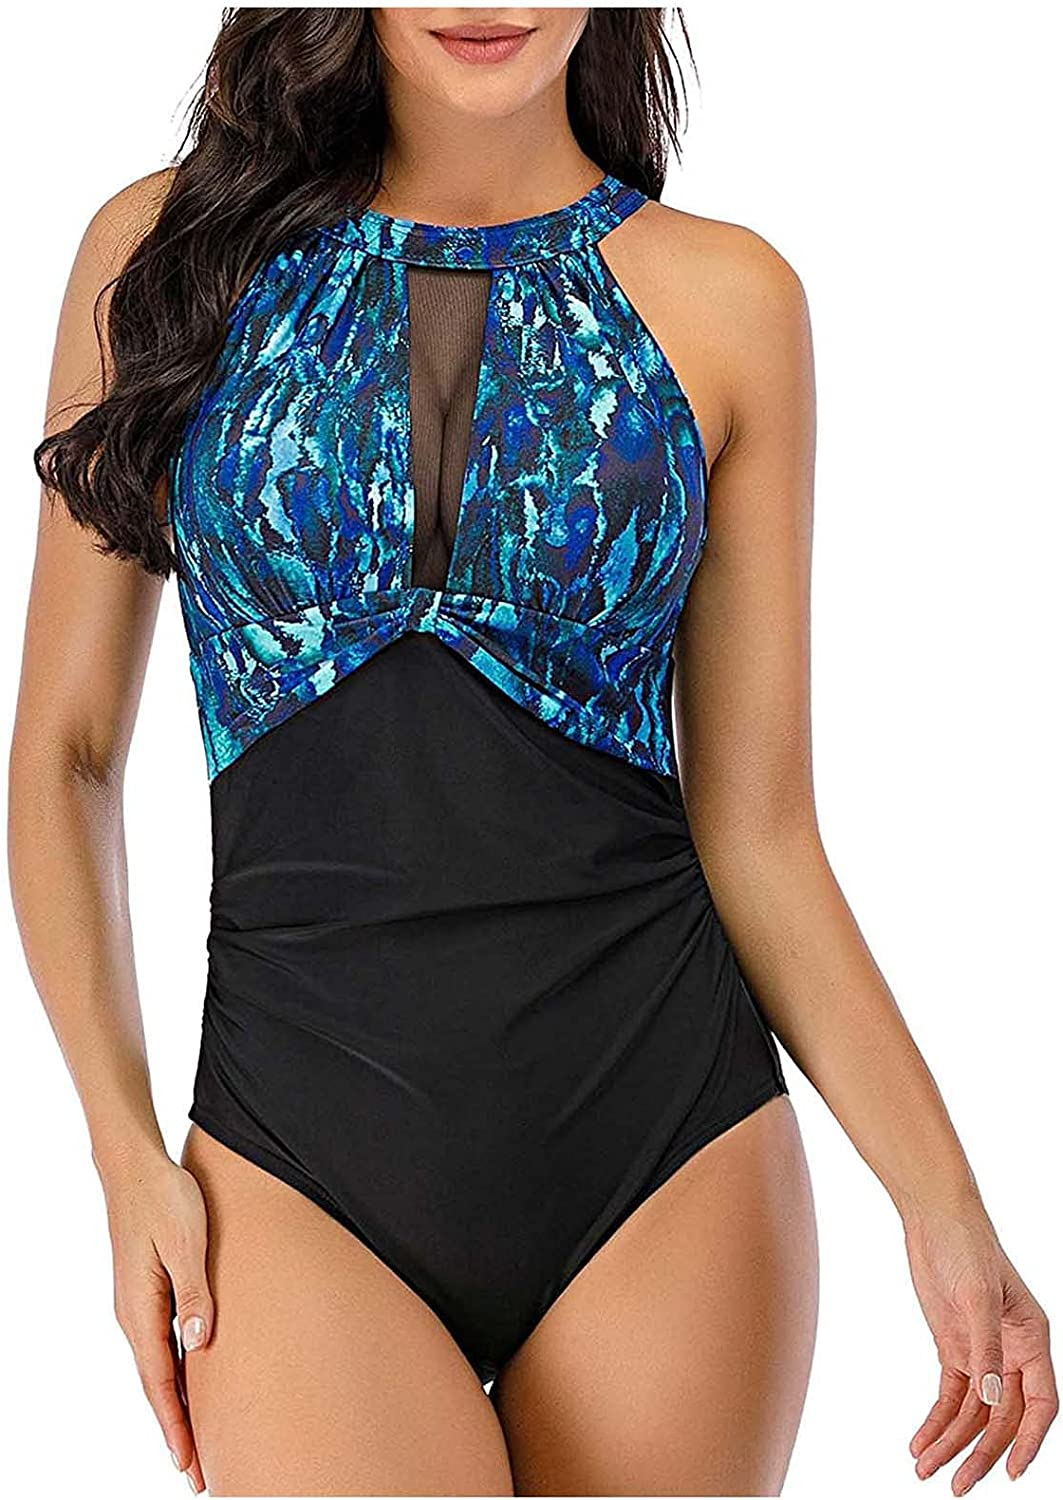 Women's One Piece Swimsuits Dallas Mall High unisex Neck Leaves Patchwork Print Mon